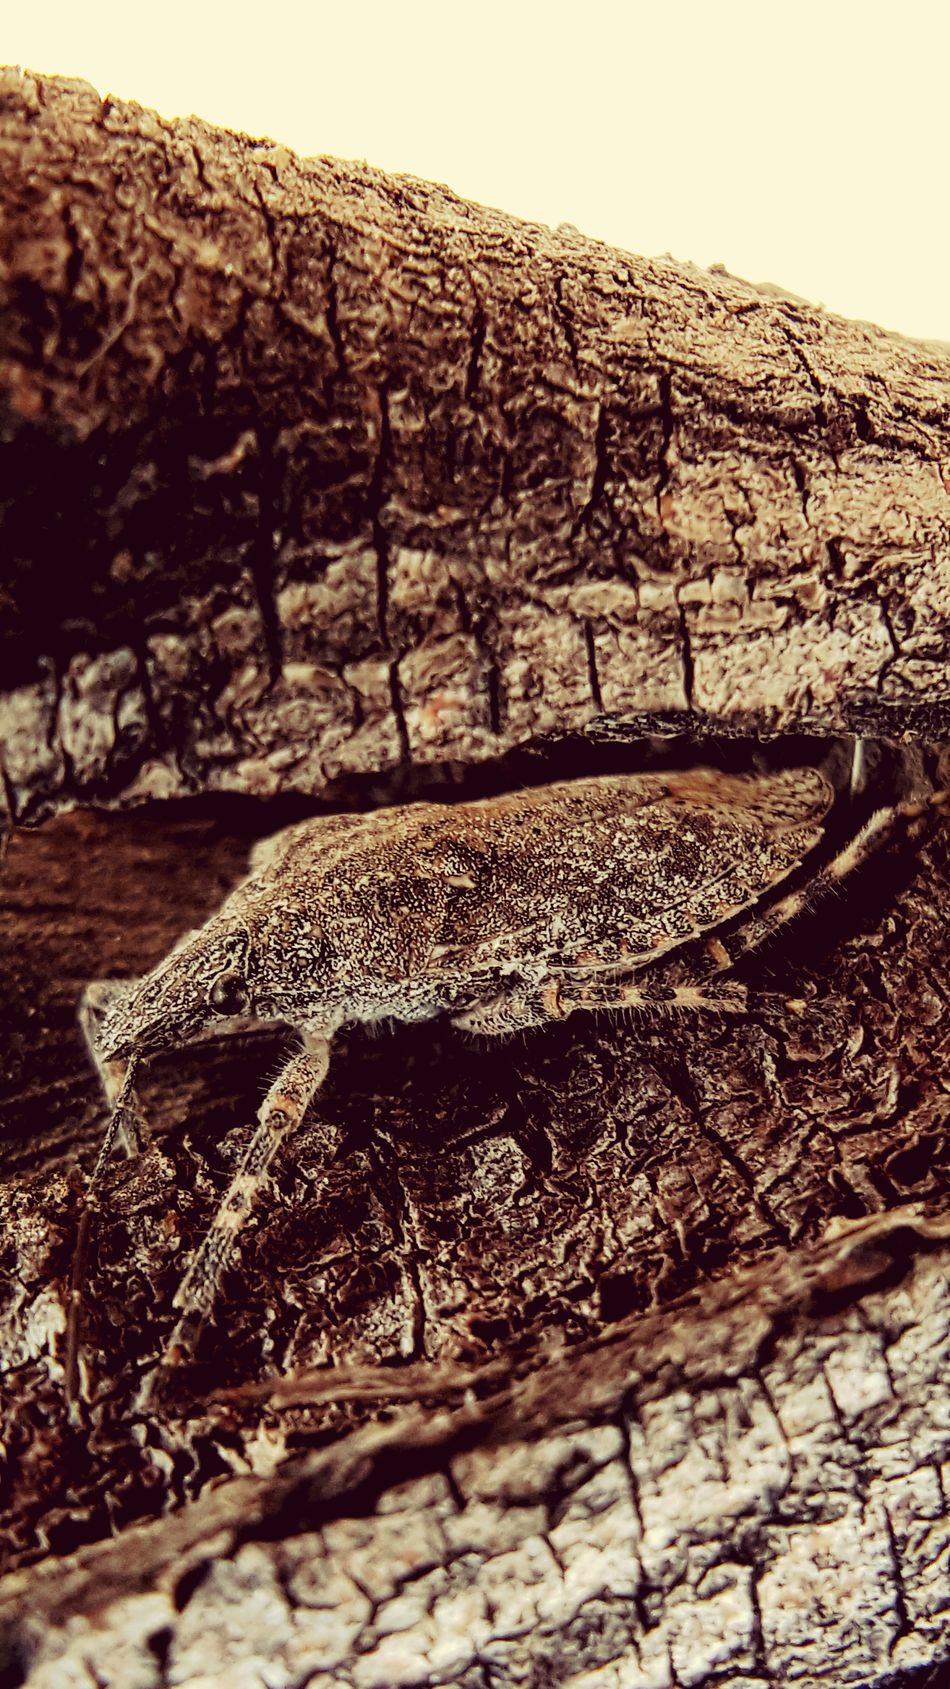 Outdoors Nature Animals In The Wild Day No People One Animal Animal Themes Close-up Insect Insects  Eyes Brown Gray Full Length Stinkbug Hidden Hiding Camaflouge Stink Bug